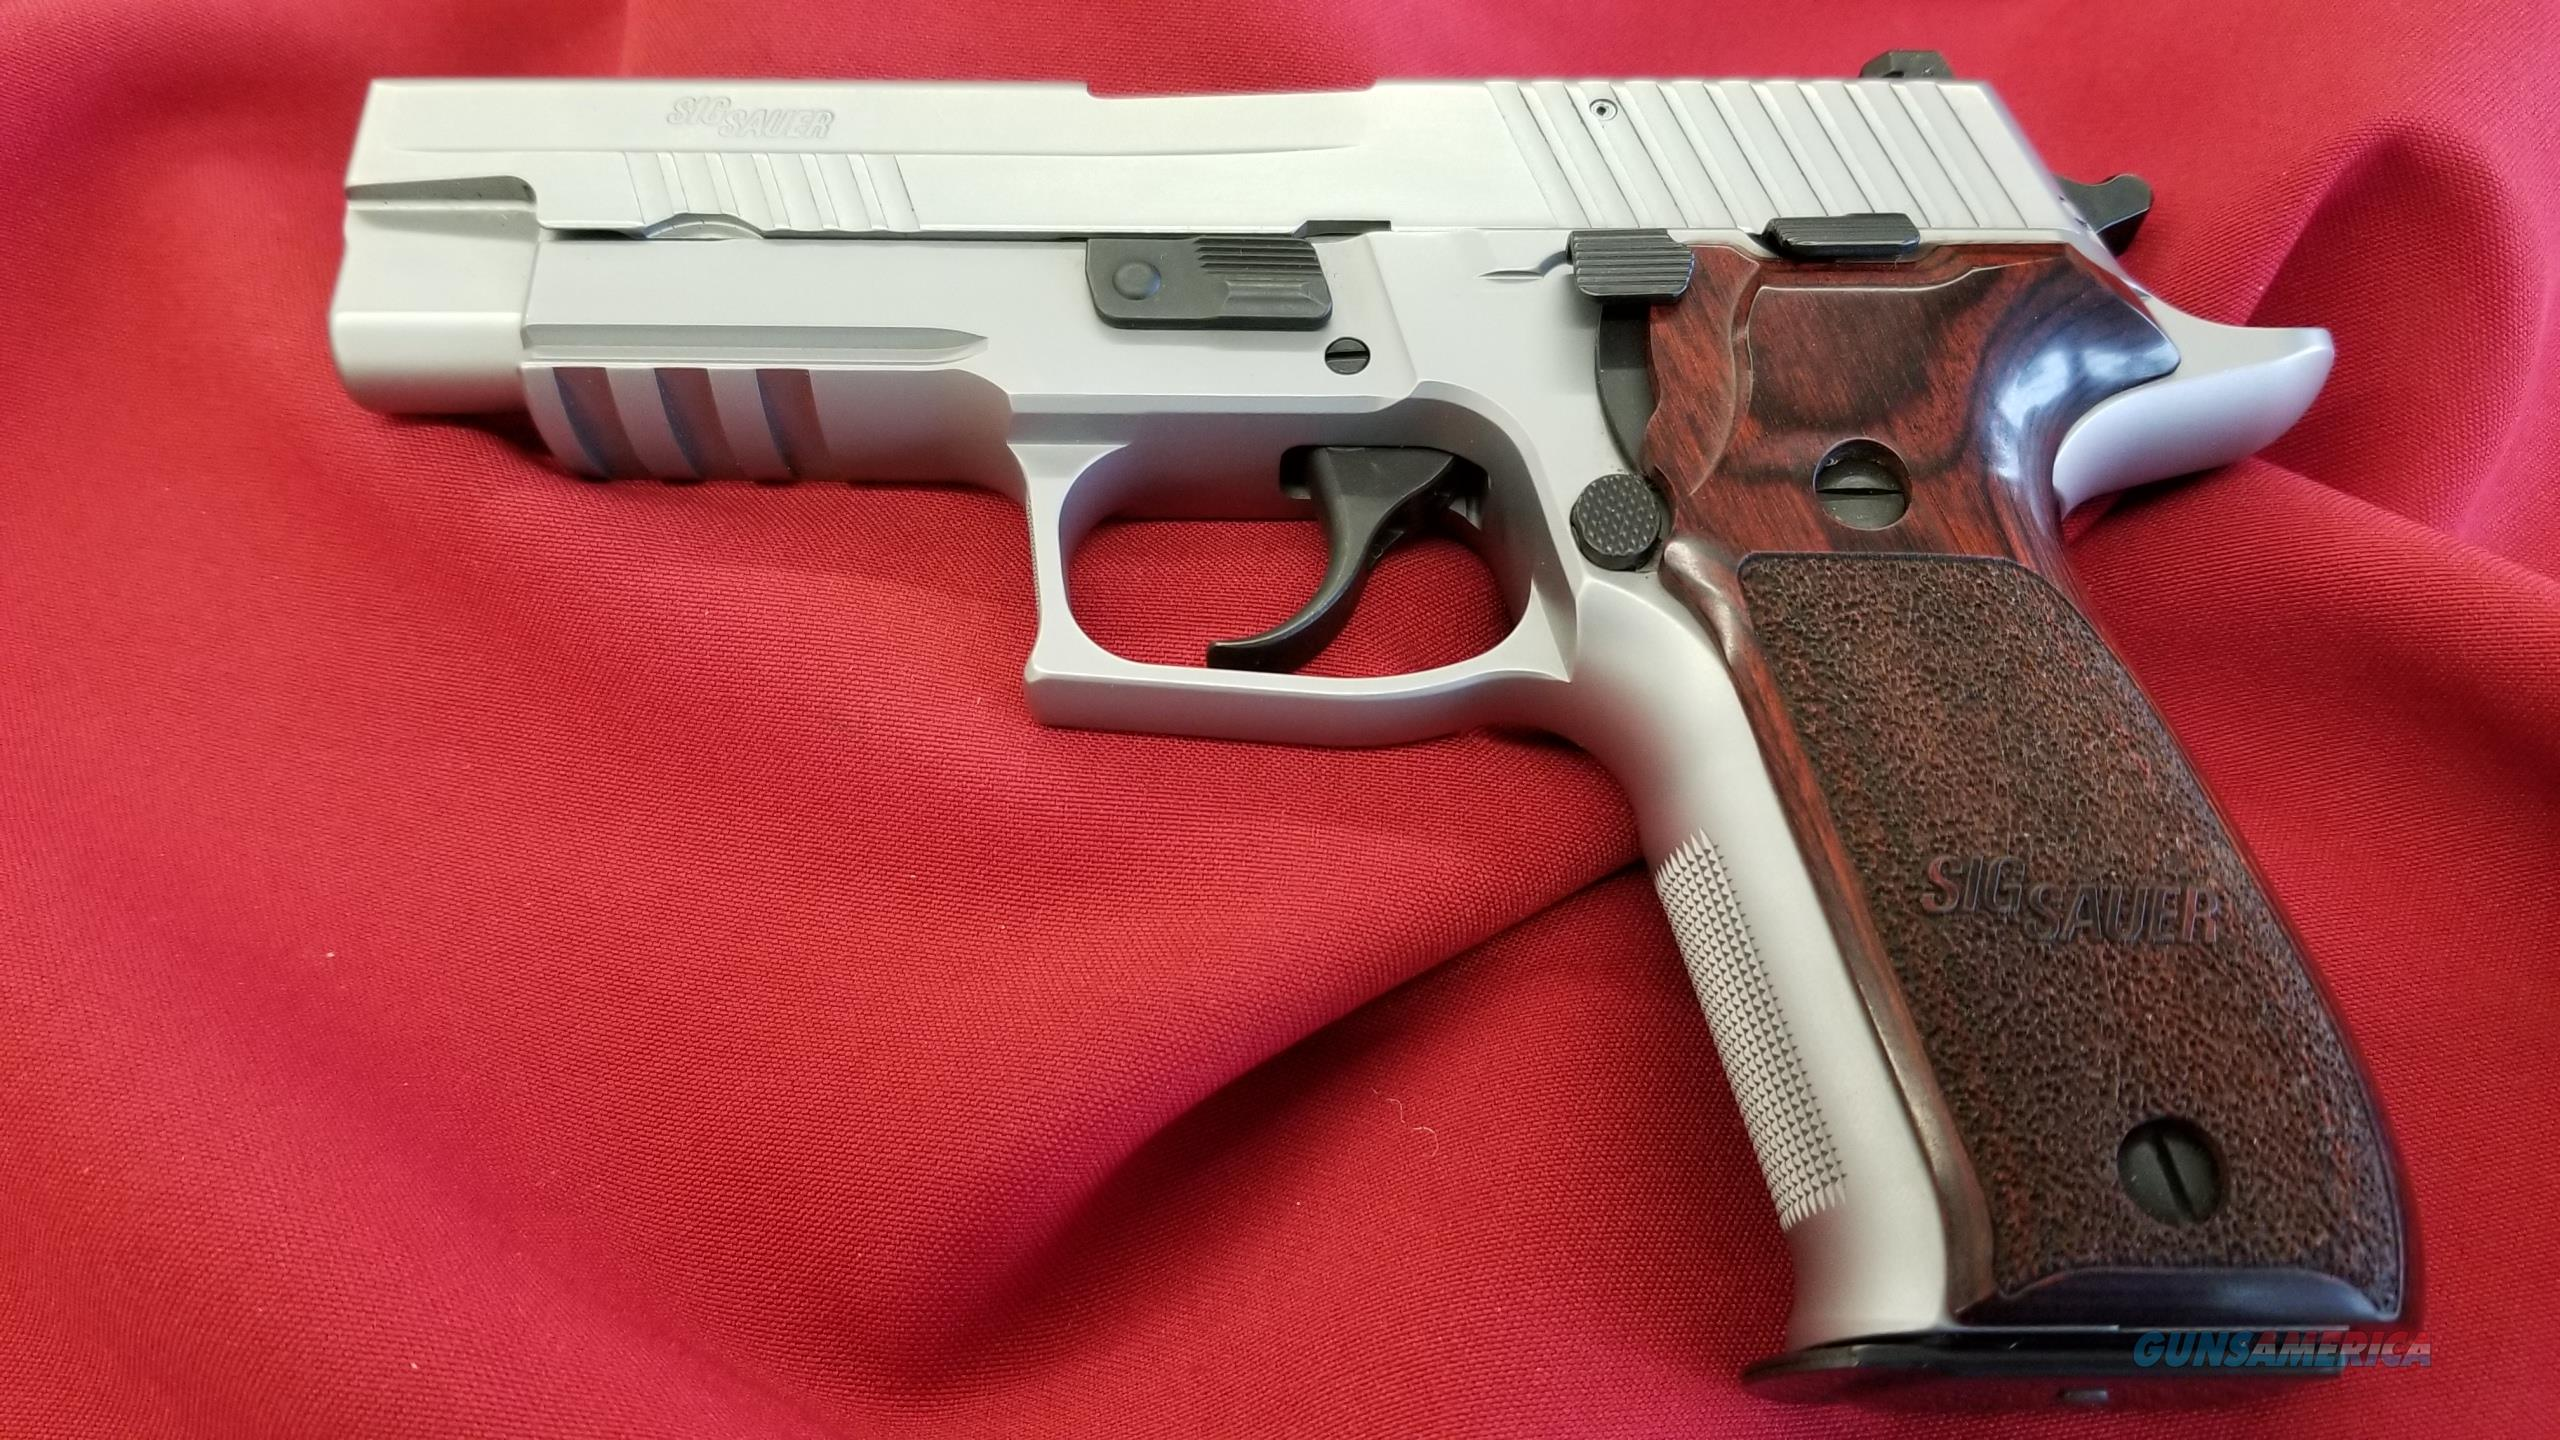 Pre-Owned Sig Sauer P226 Elite 9mm w/ (2) 15 Round Mags  Guns > Pistols > Sig - Sauer/Sigarms Pistols > P226